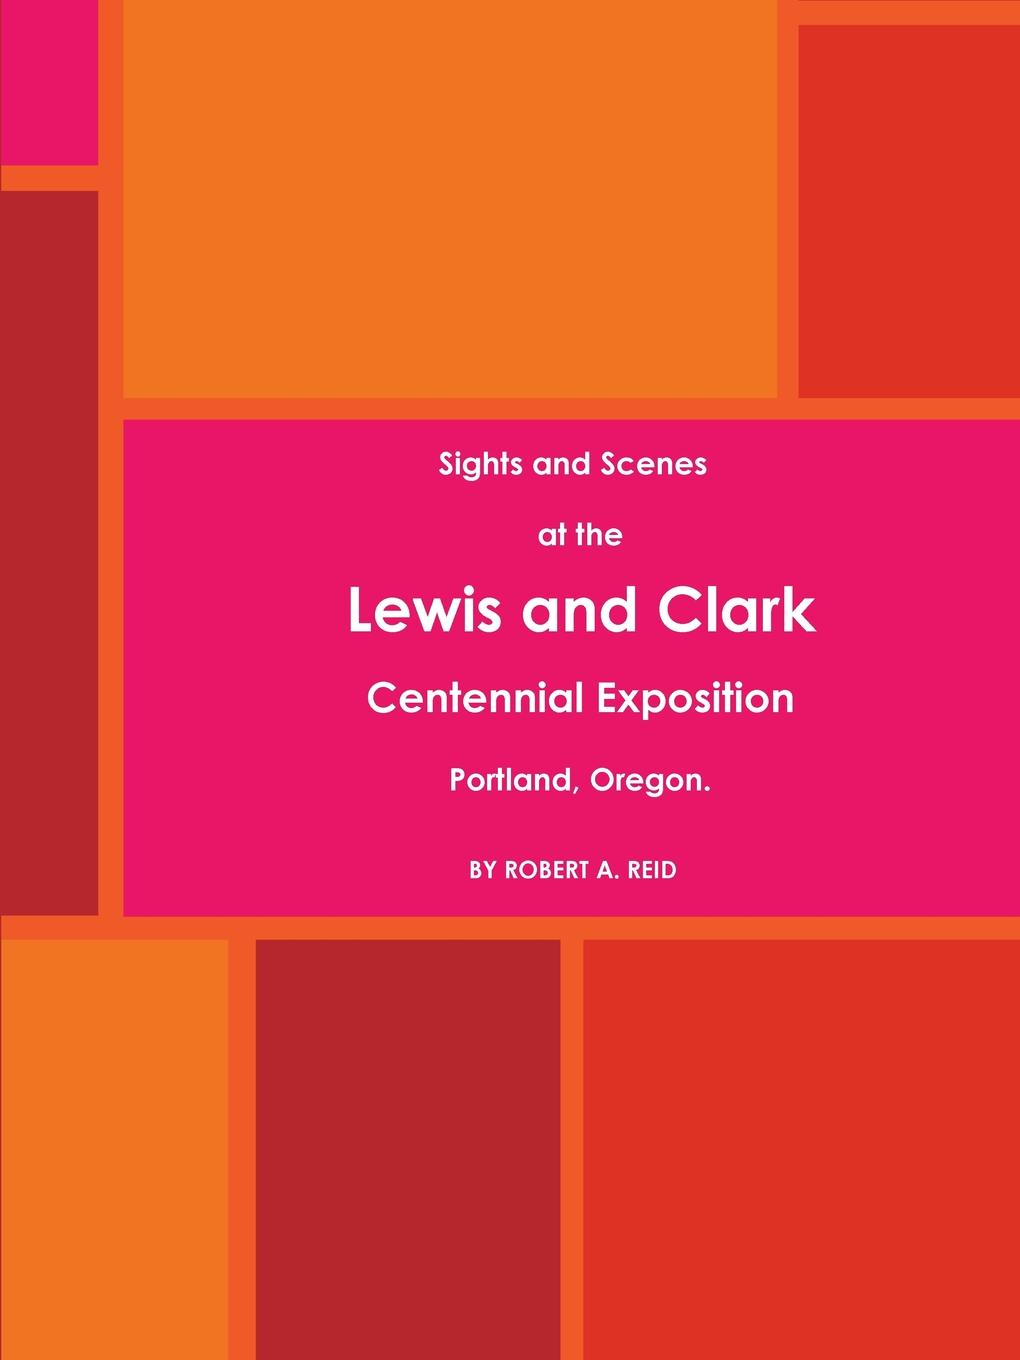 цены Robert A. Reid Sights and Scenes at the Lewis and Clark Centennial Exposition, Portland, Oregon. (1905)